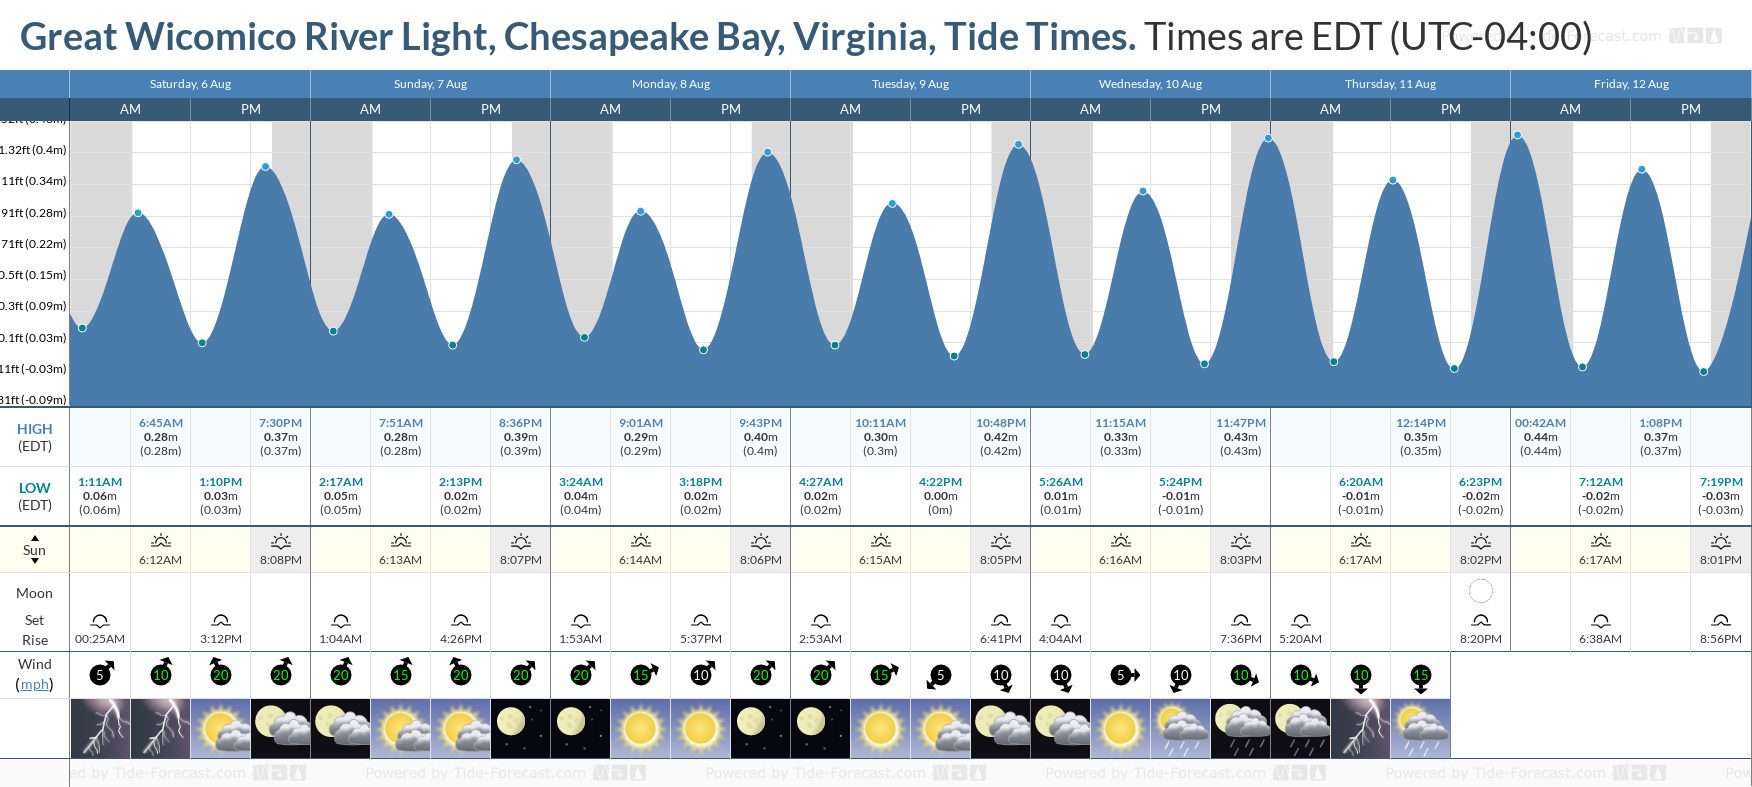 Great Wicomico River Light, Chesapeake Bay, Virginia Tide Chart including high and low tide tide times for the next 7 days